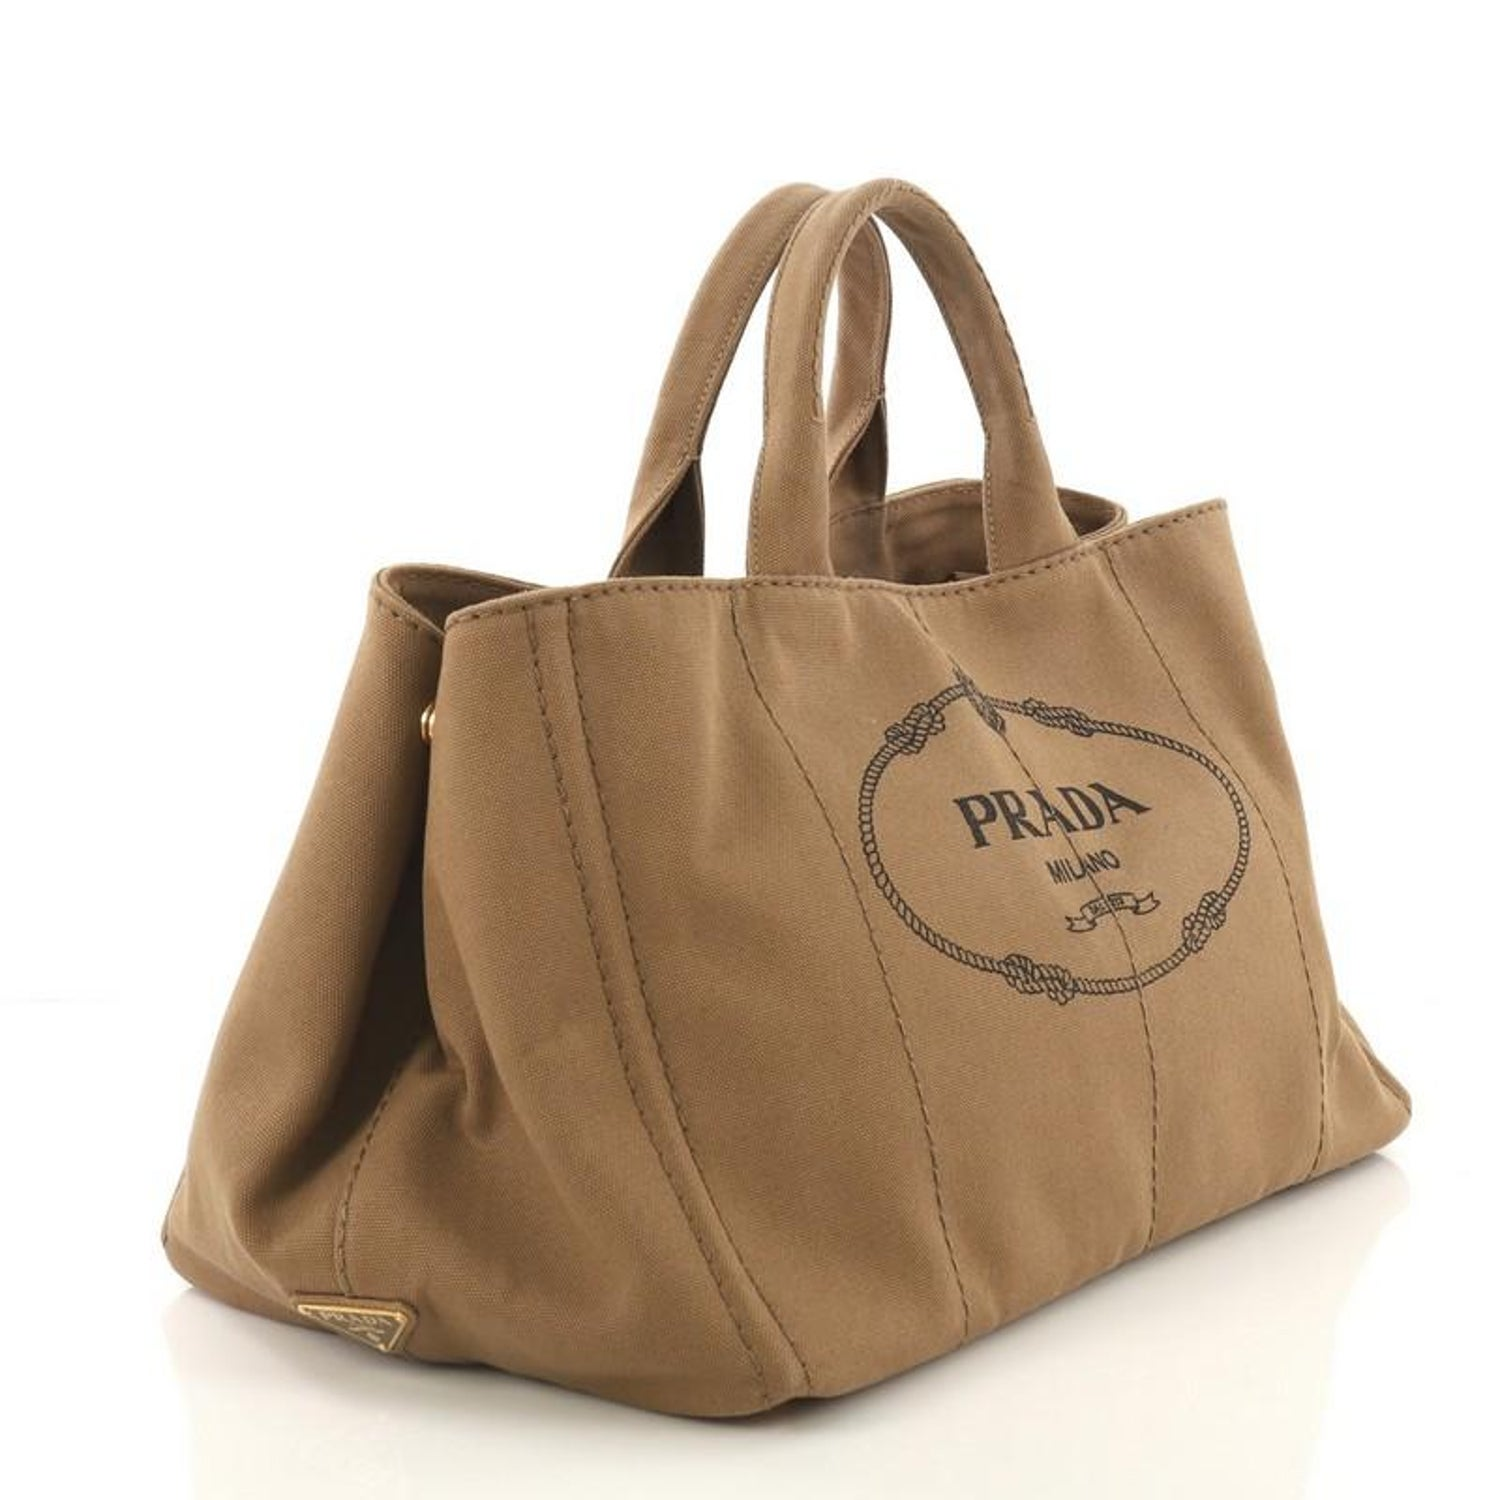 bcc494fe66c2a3 Prada Canapa Convertible Tote Canvas Large For Sale at 1stdibs